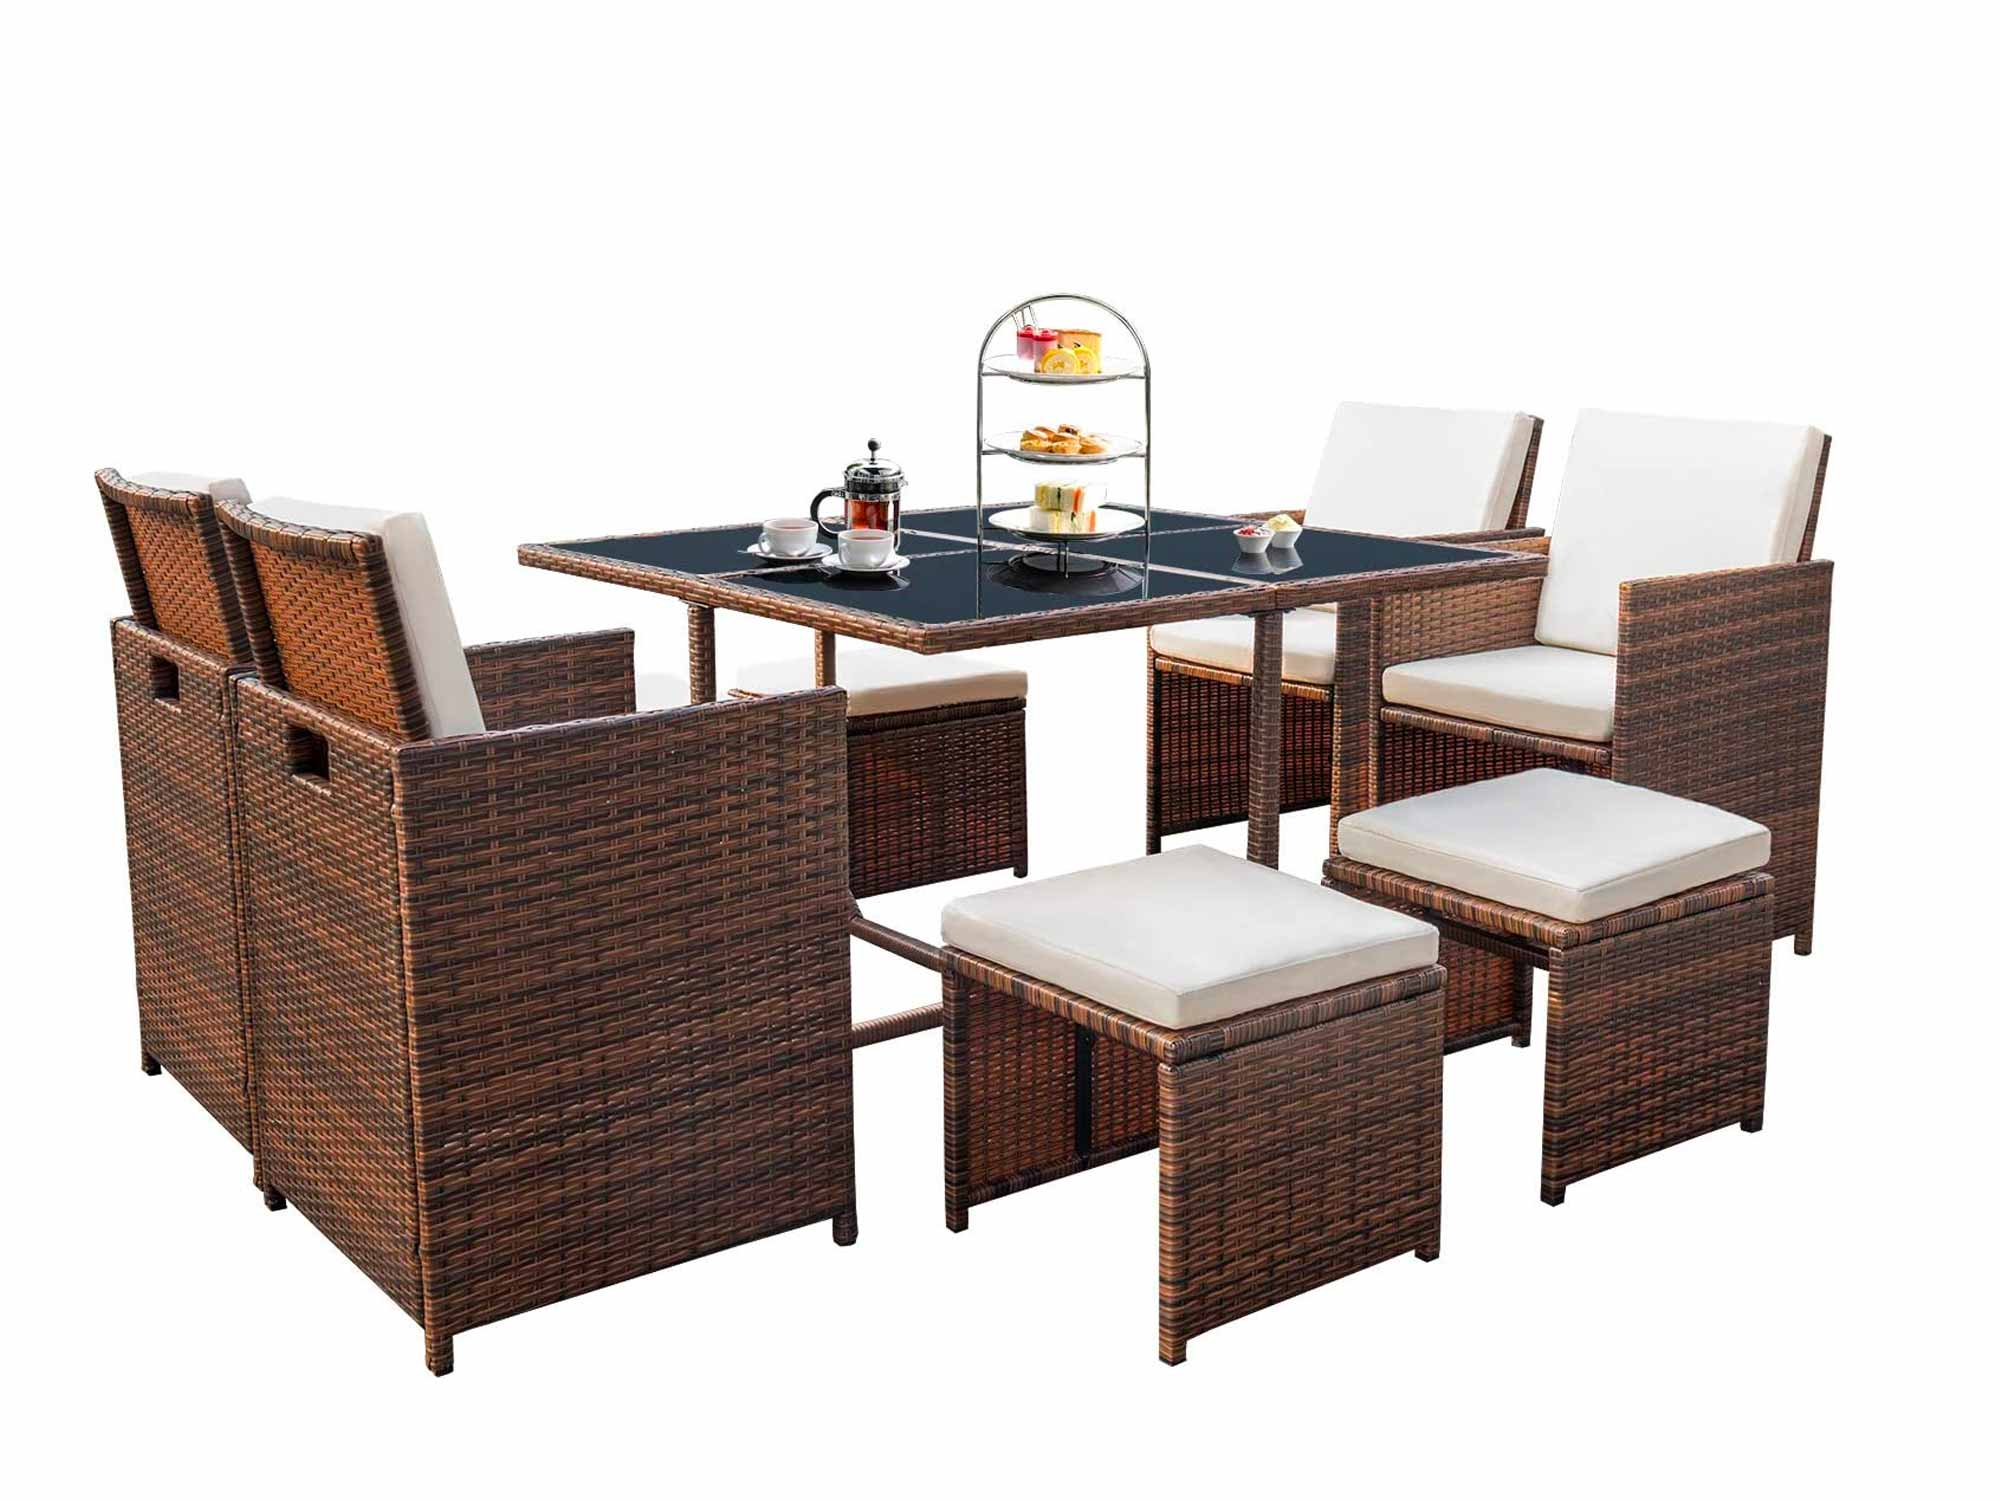 Devoko 9 Pieces Patio Dining Sets Outdoor Space Saving Rattan Chairs with Glass Table Patio Furniture Sets Cushioned Seating and Back Sectional Conversation Set